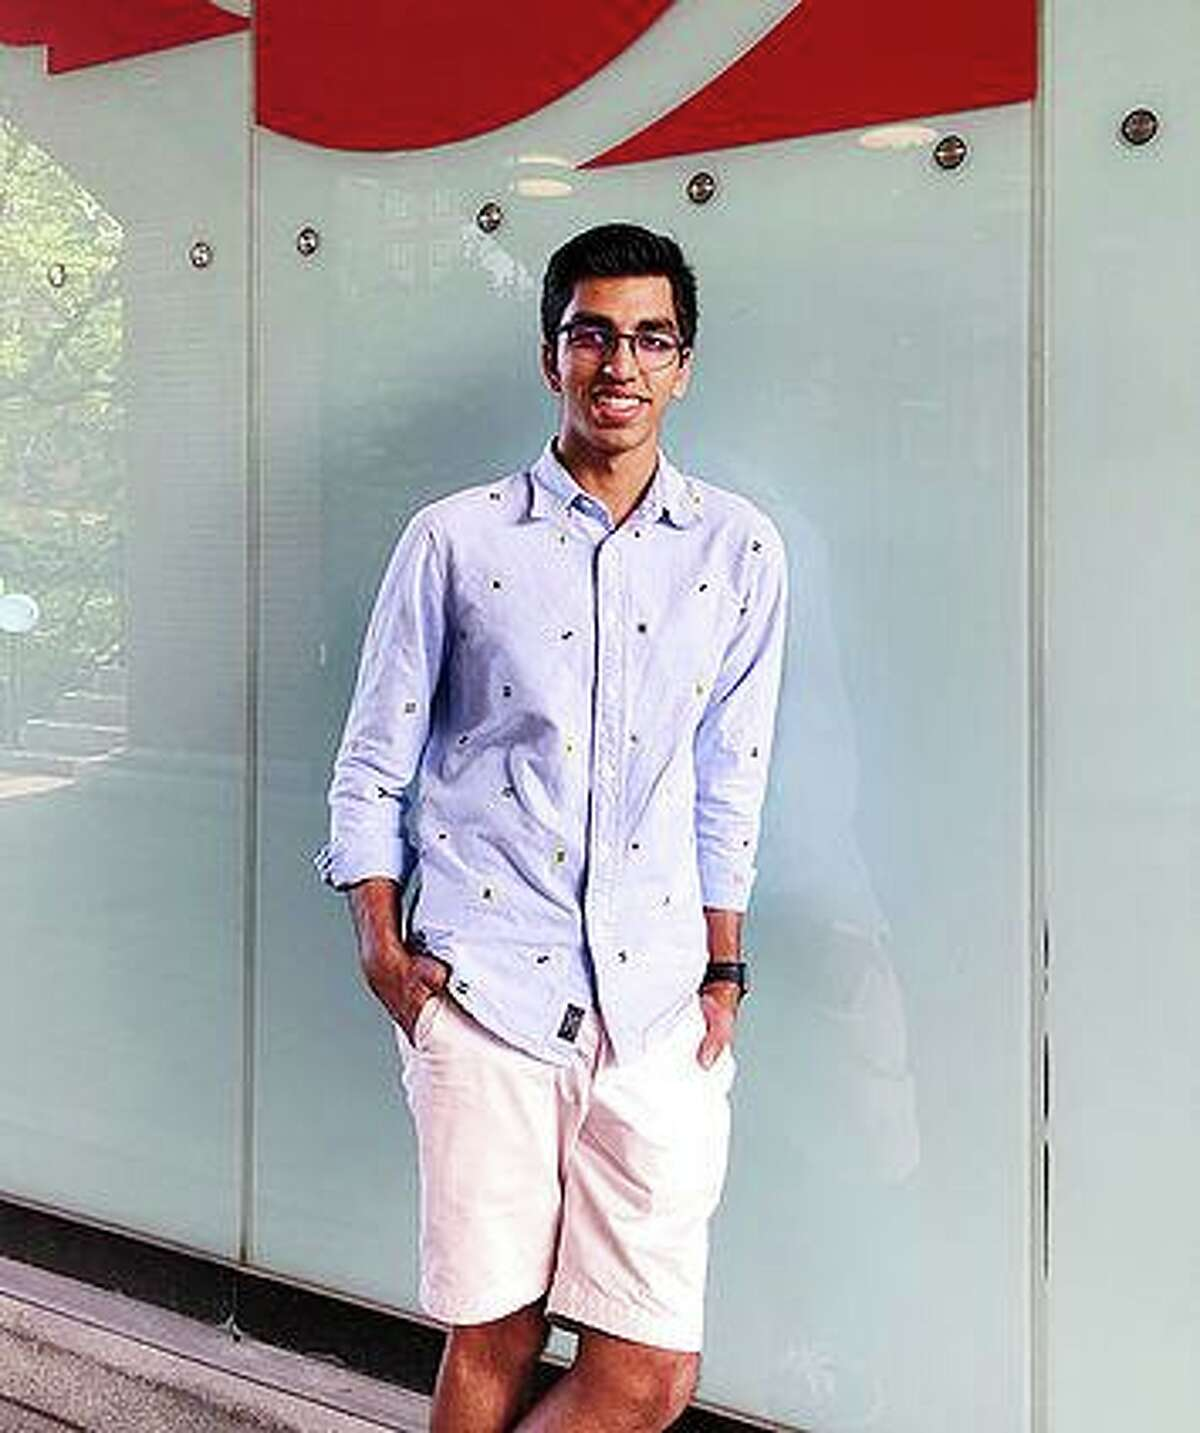 Siddharth Jain, a Shelton High senior, is collecting old iPads, iPhones, Samsung Tablets or other camera-enabled electronics to donate to senior citizens and health care facilities.